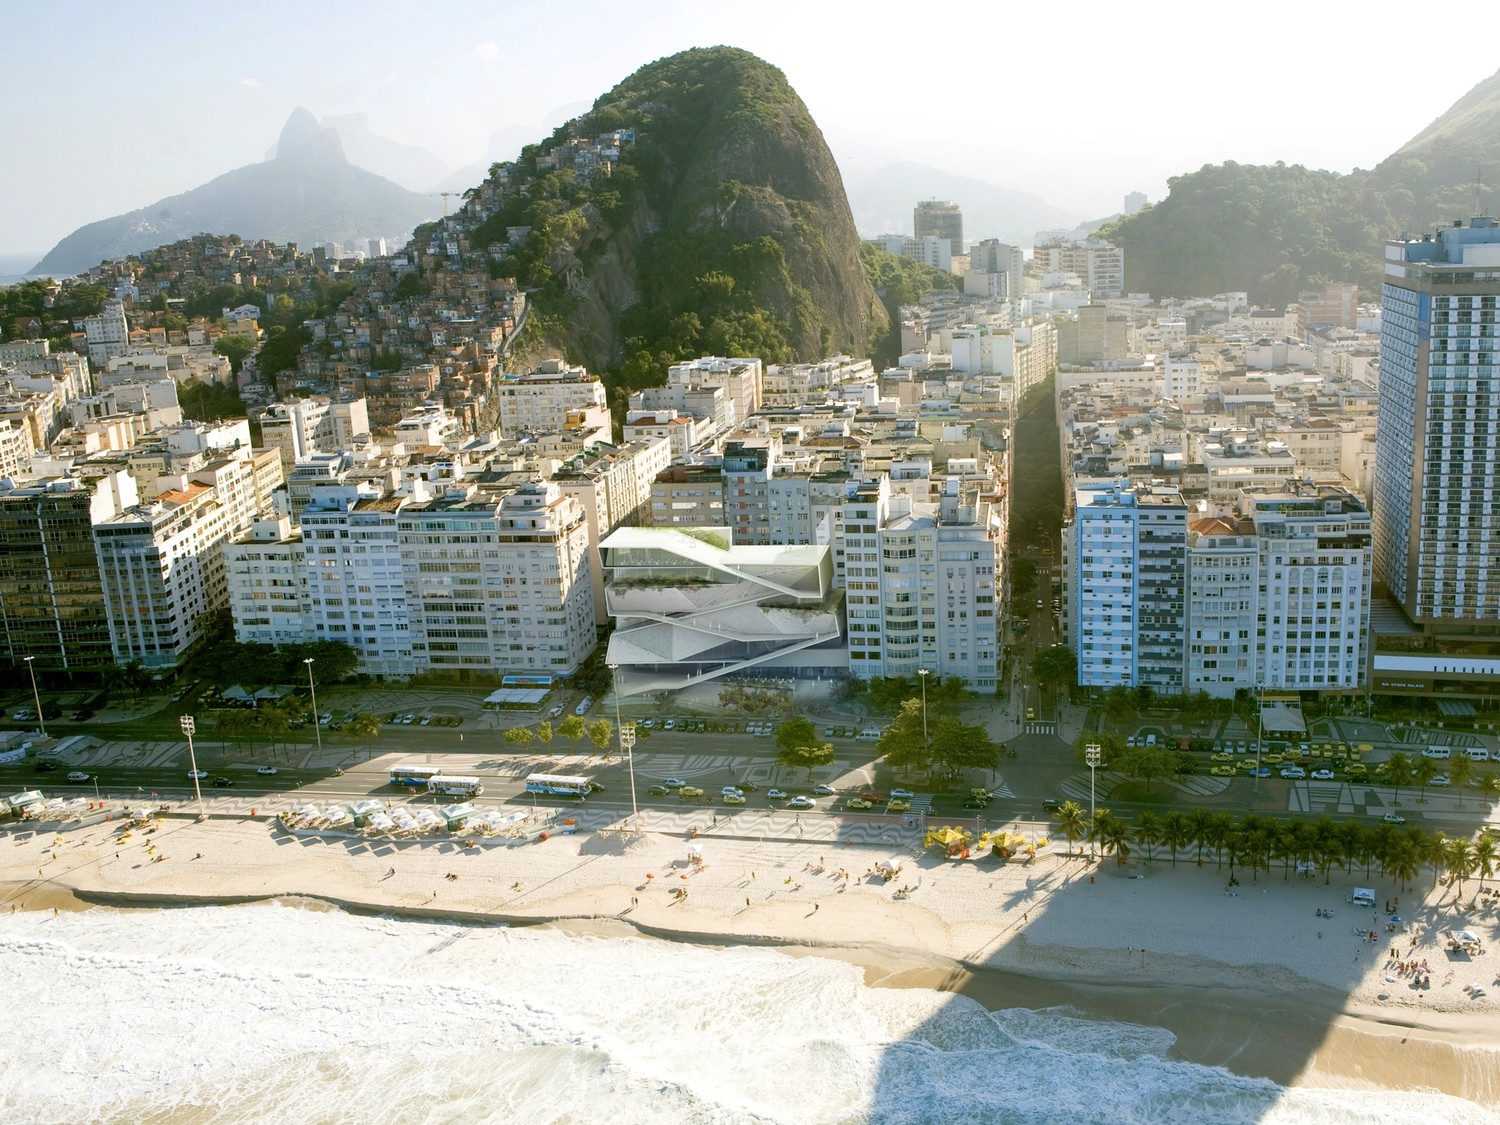 10 new museums opening in 2018: Museum of Image and Sound in Rio